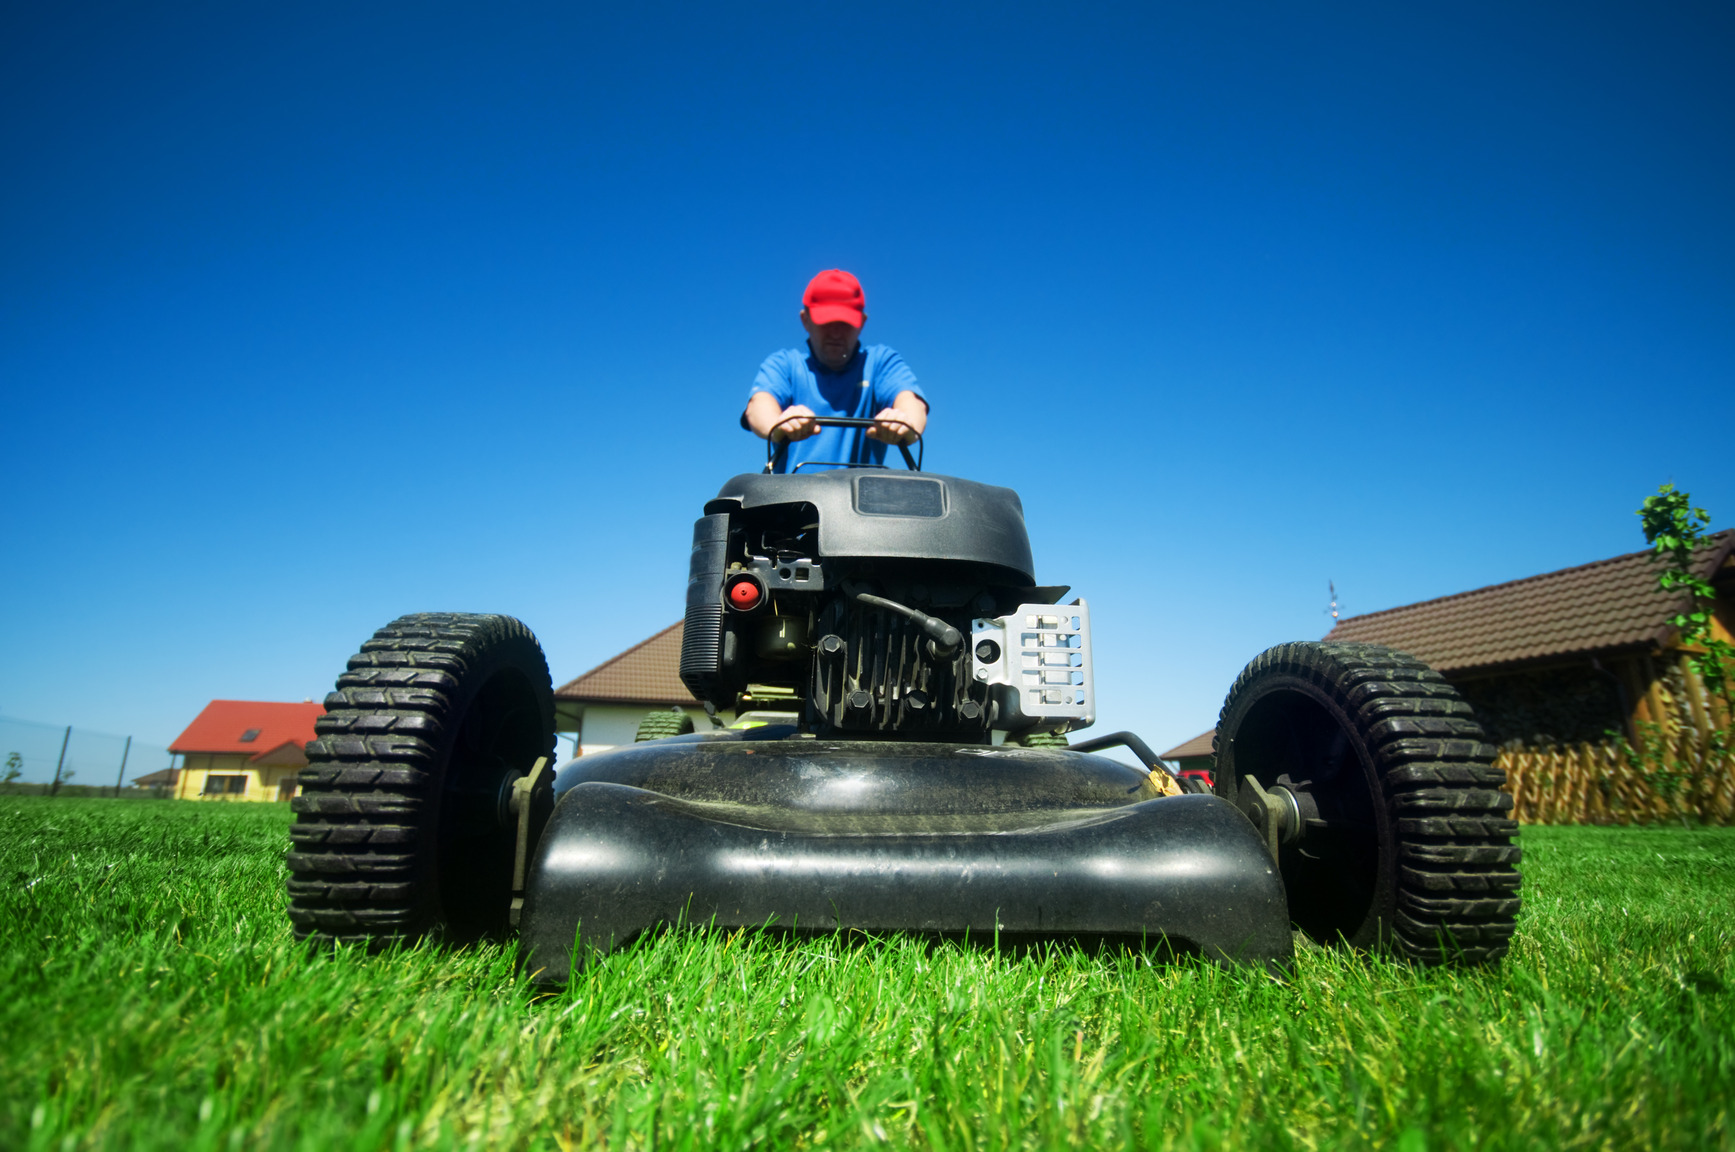 man mowing the lawn on a riding grass mower